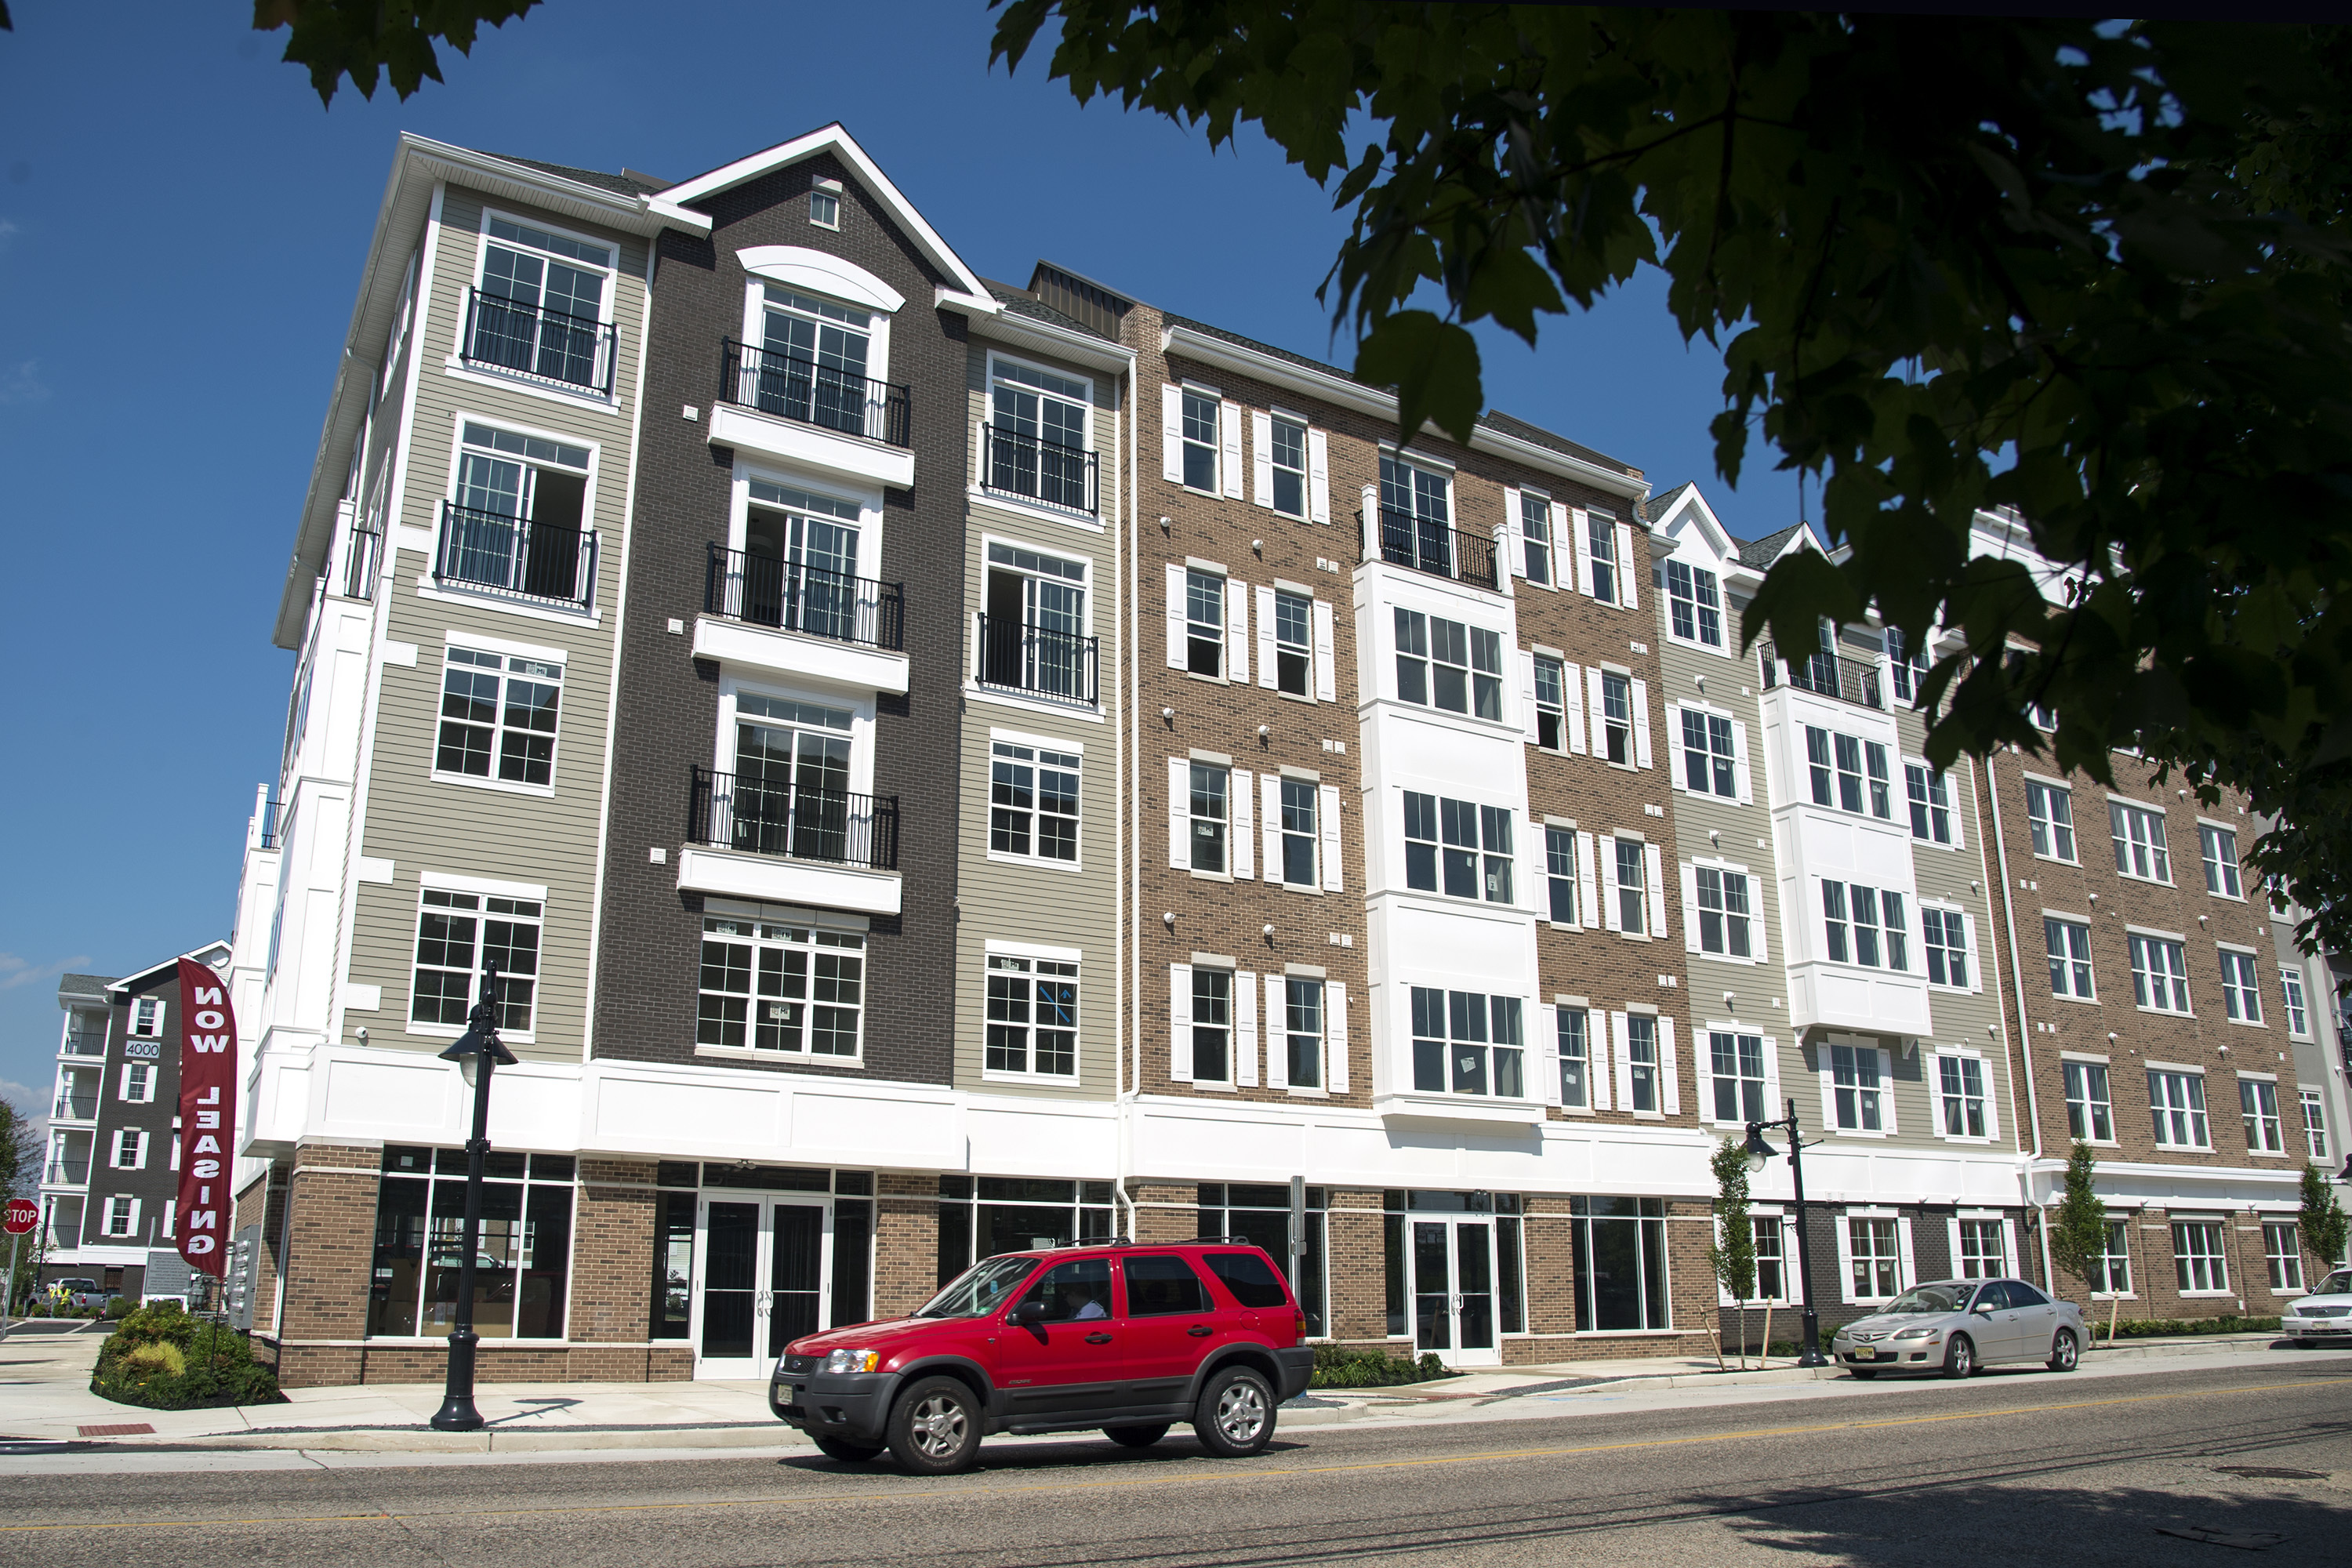 The new complex of apartments near the PATCO Speedline station along Haddon Avenue in the Westmont section of Haddon Township, where the number of younger residents is increasing. .